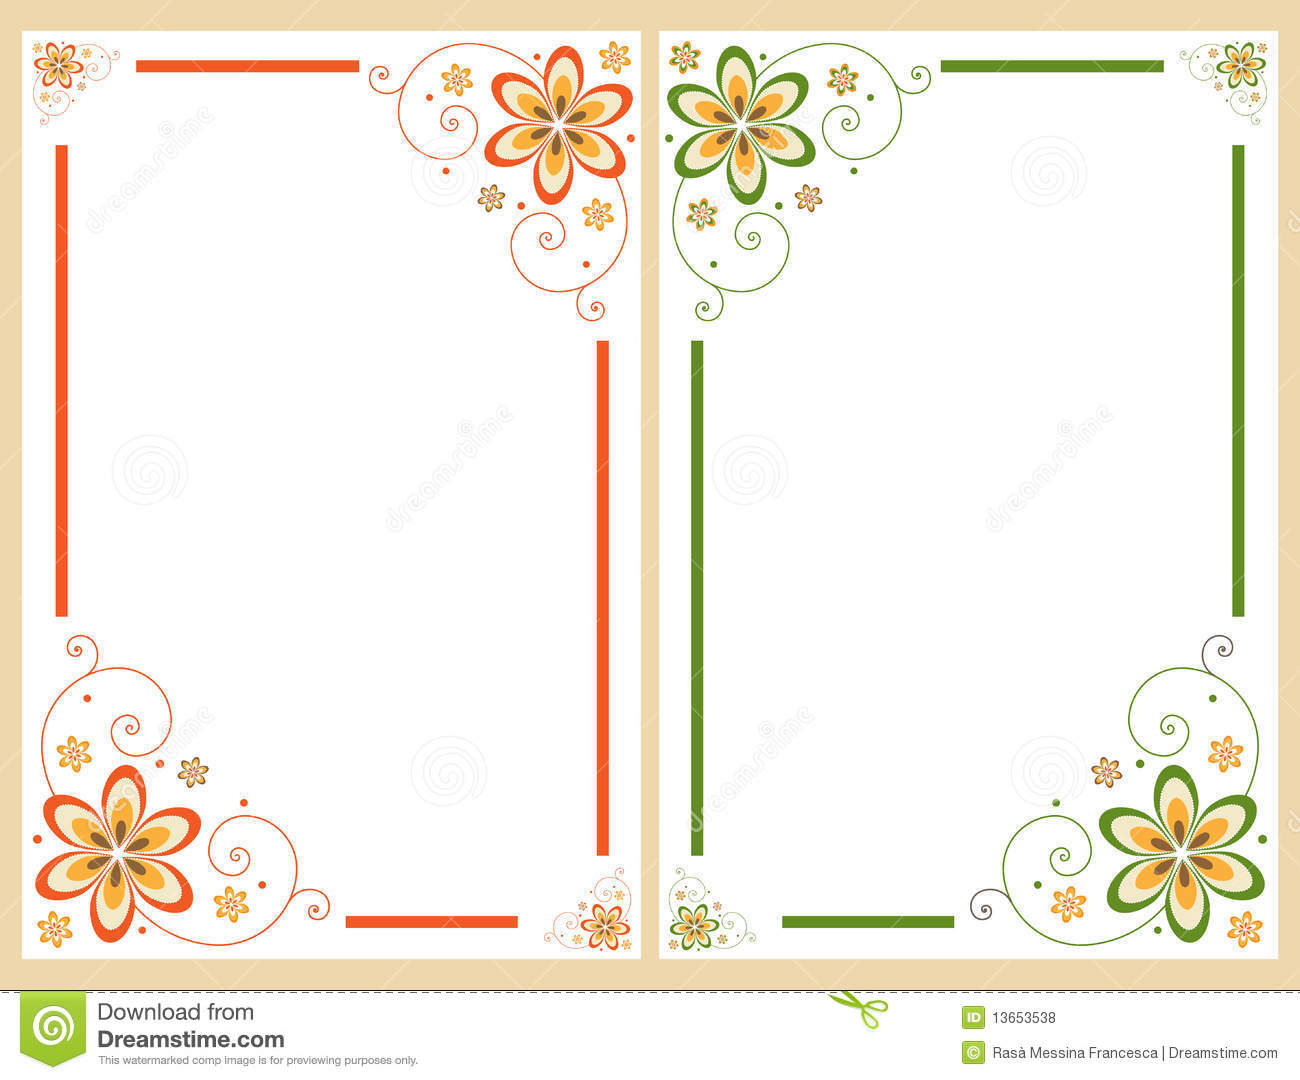 Floral border frame set stock vector. Illustration of decorate ...